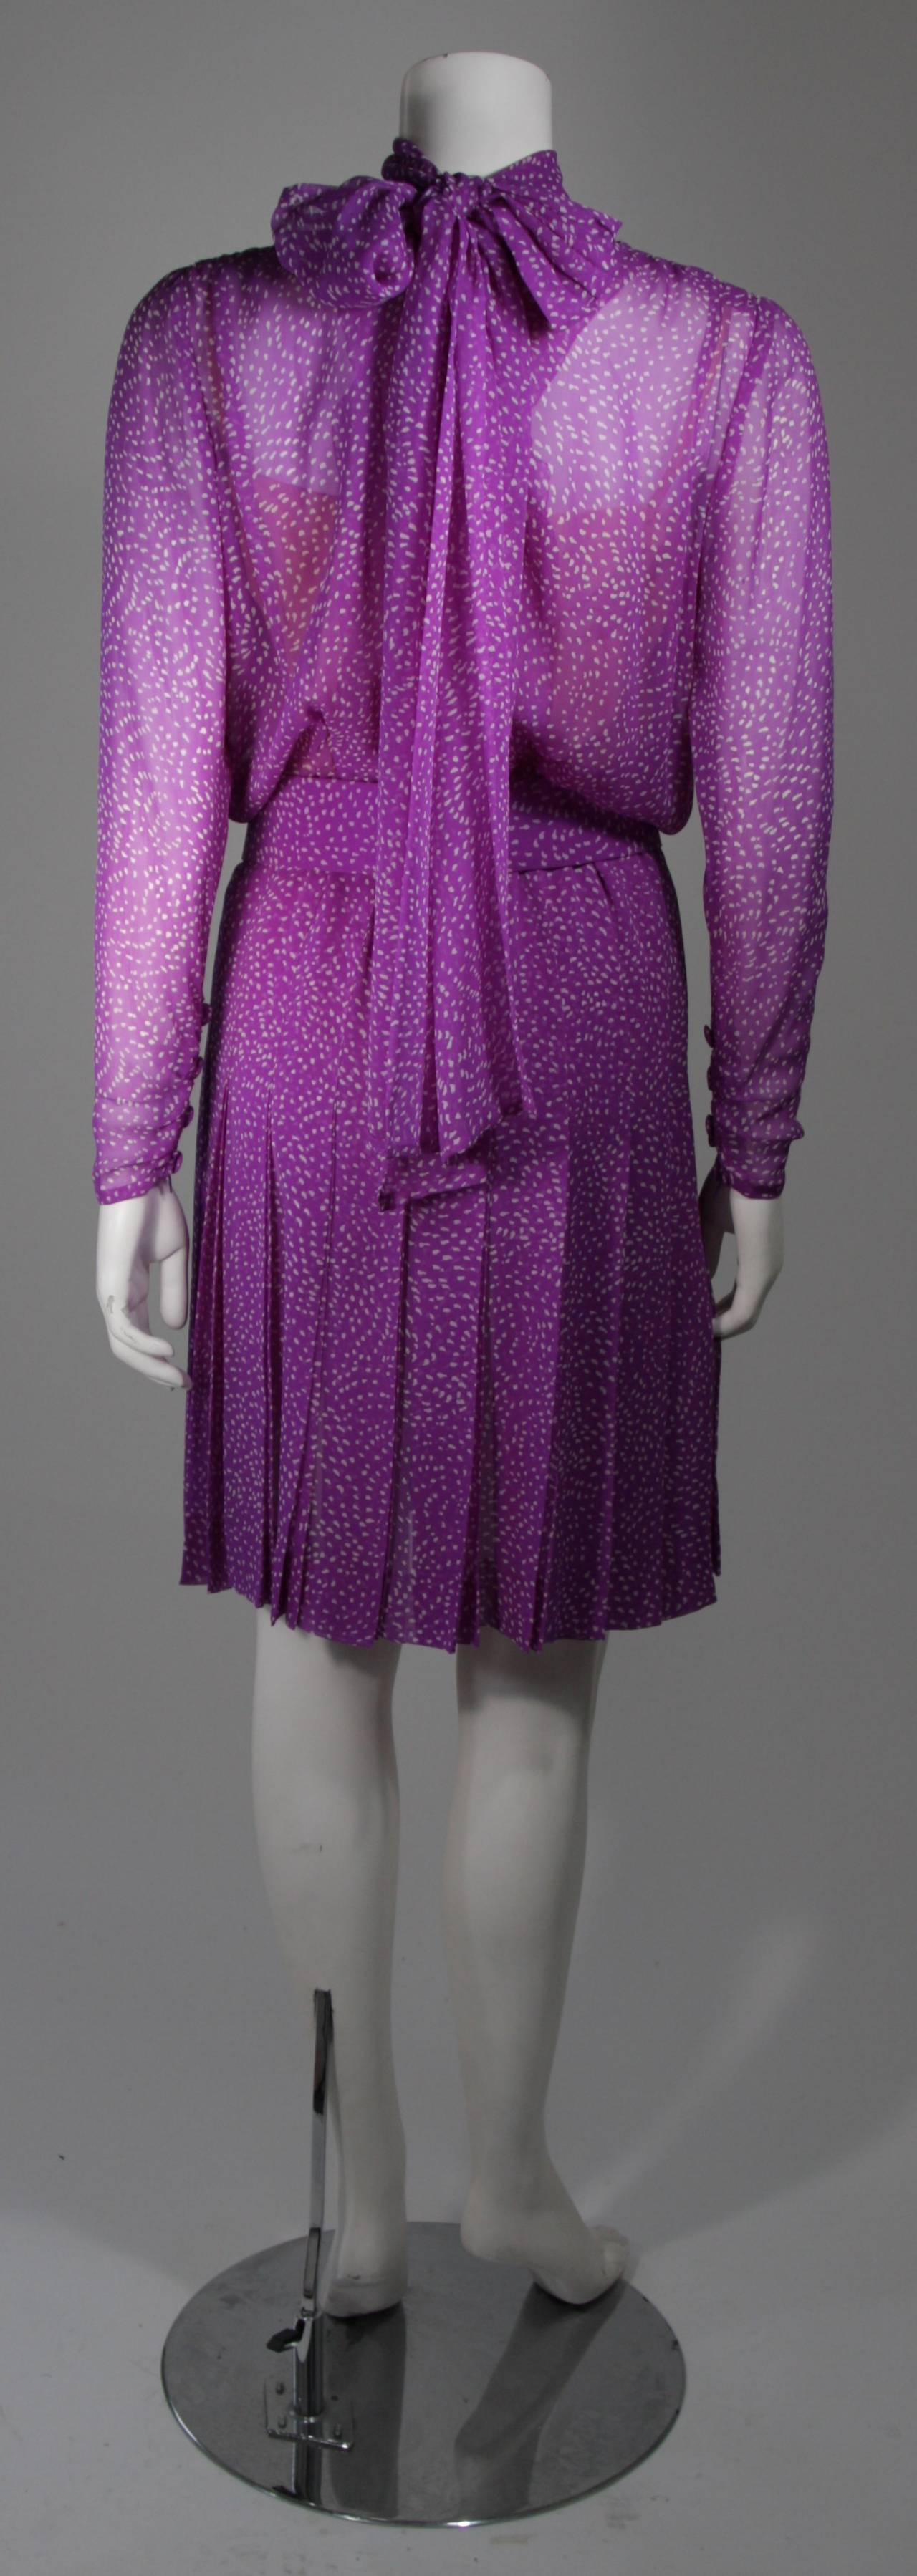 3982939e85 Givenchy Couture Purple Silk Chiffon Dress with Wrap Collar and Belt Size  Small For Sale 4